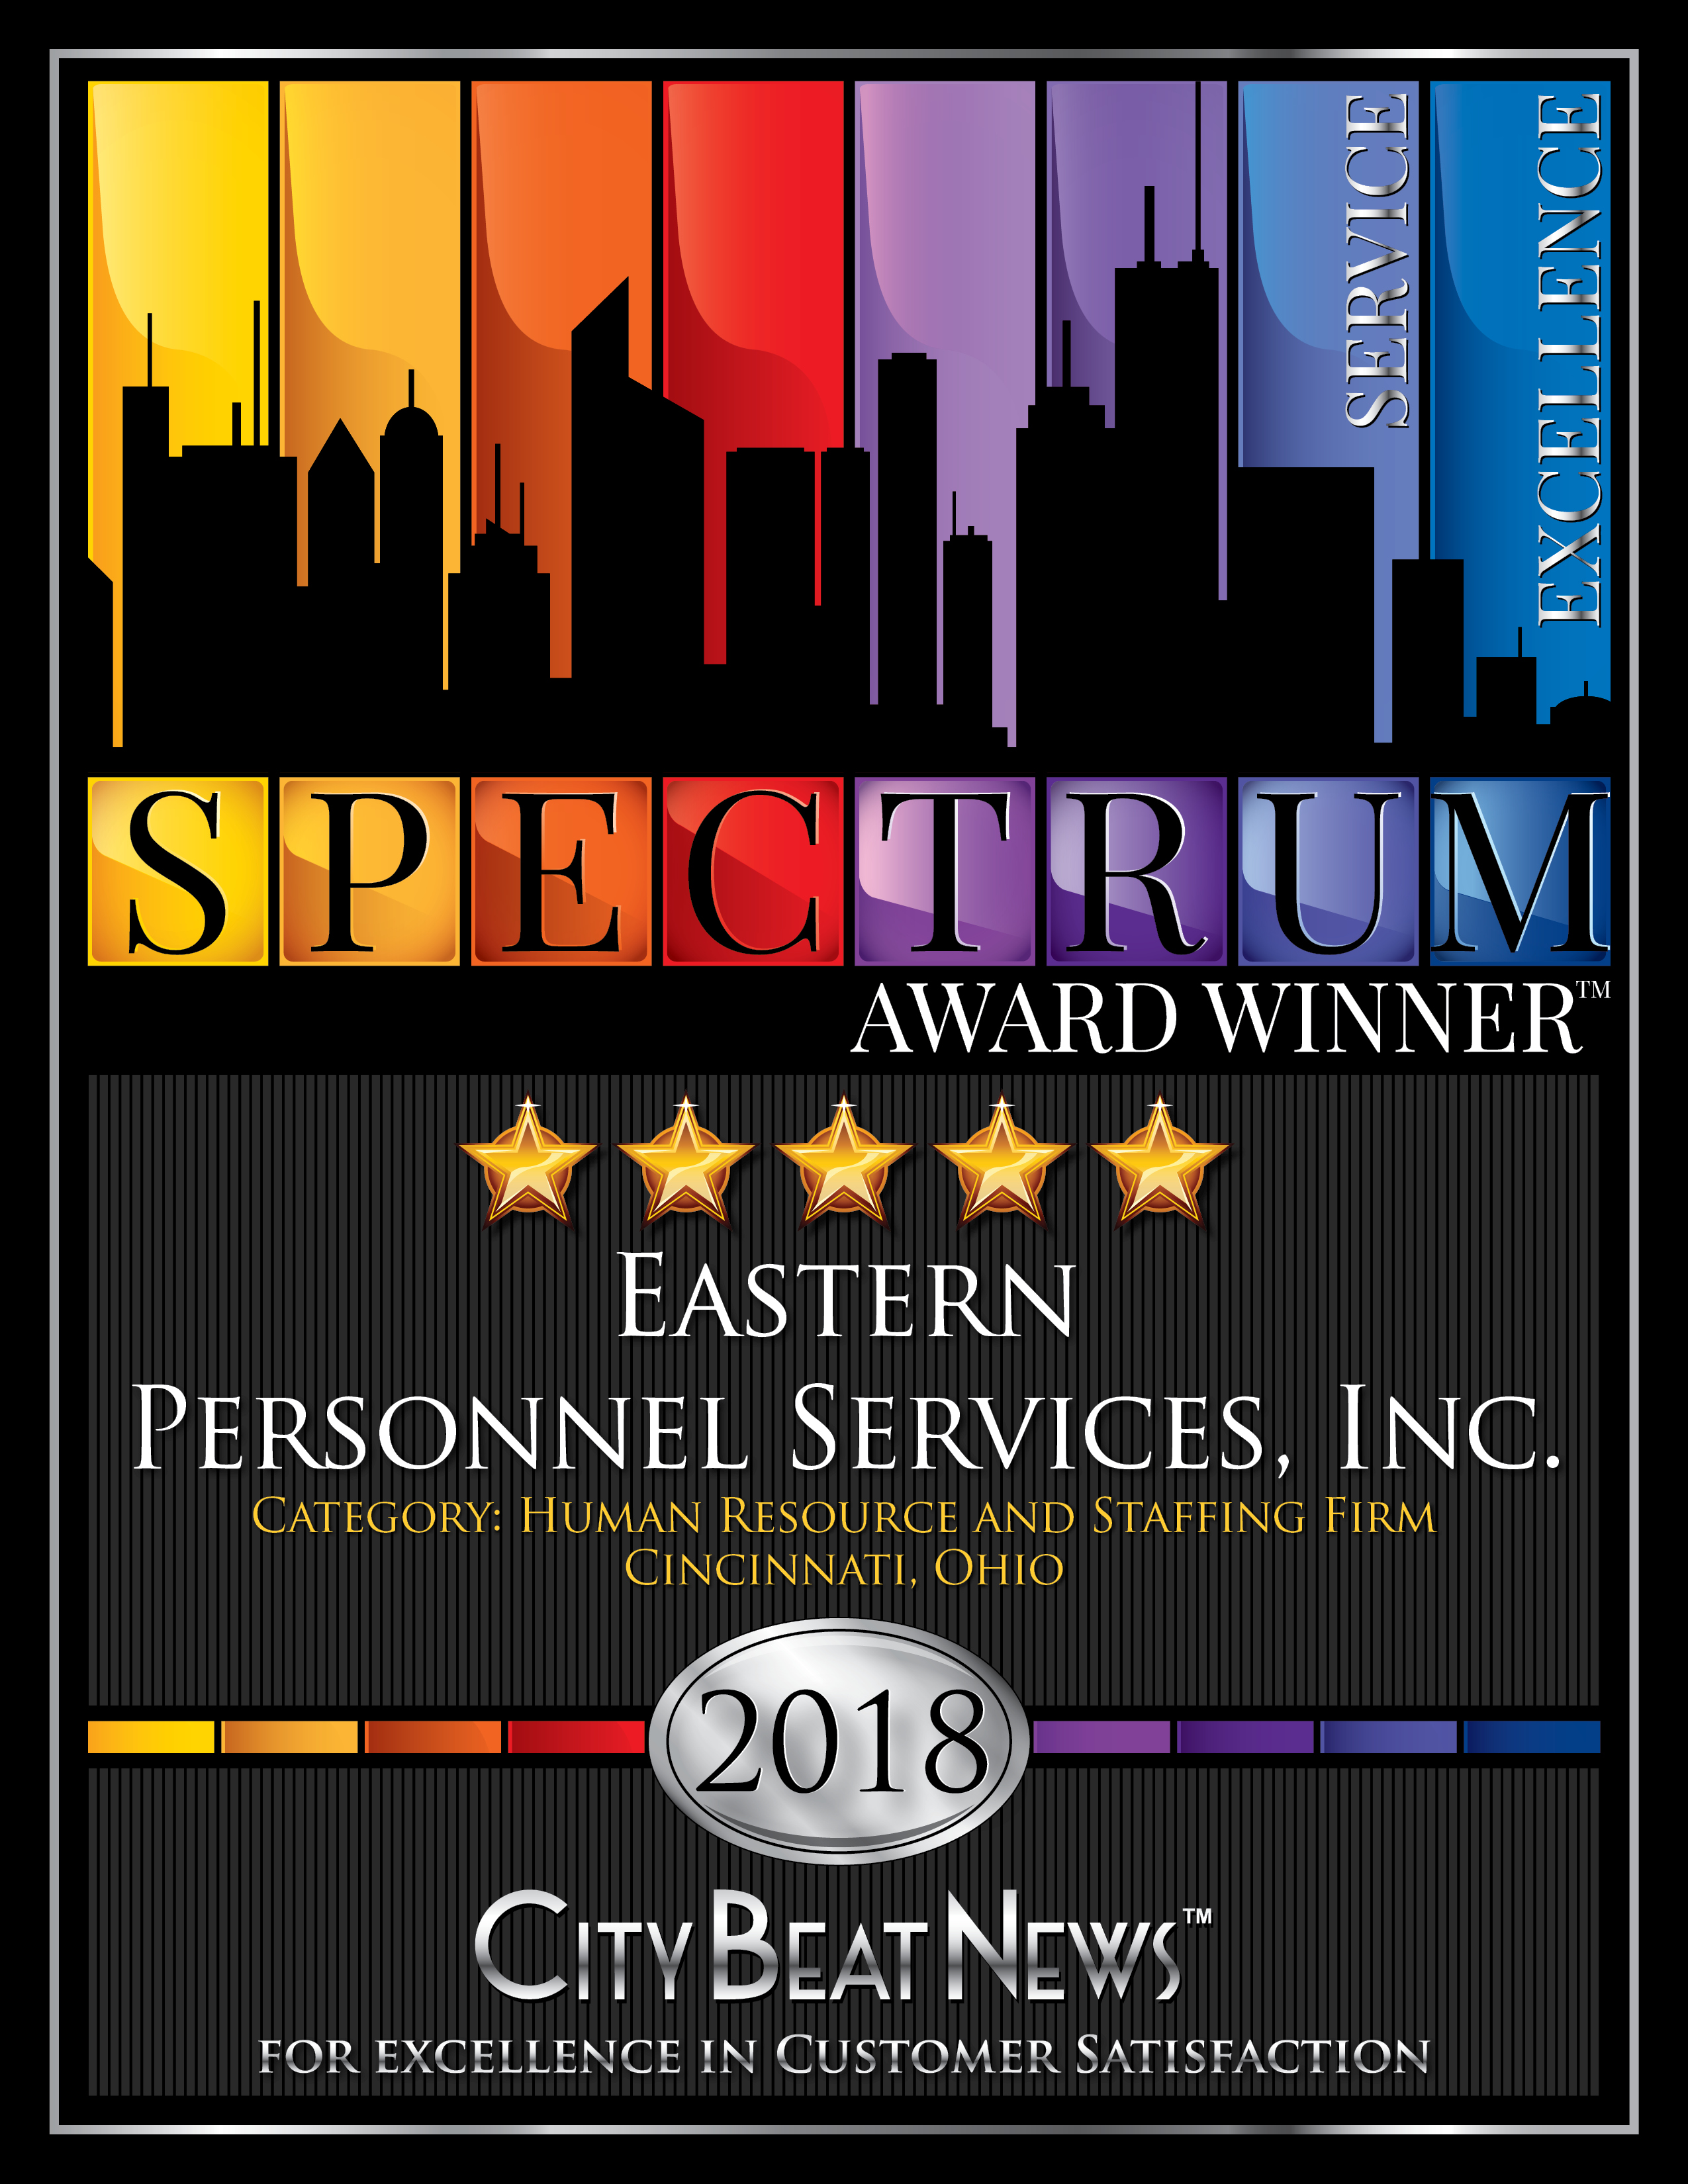 Five-Star 2018 City Beat News Spectrum Award Winner, Eastern Personnel Services, Inc., certificate